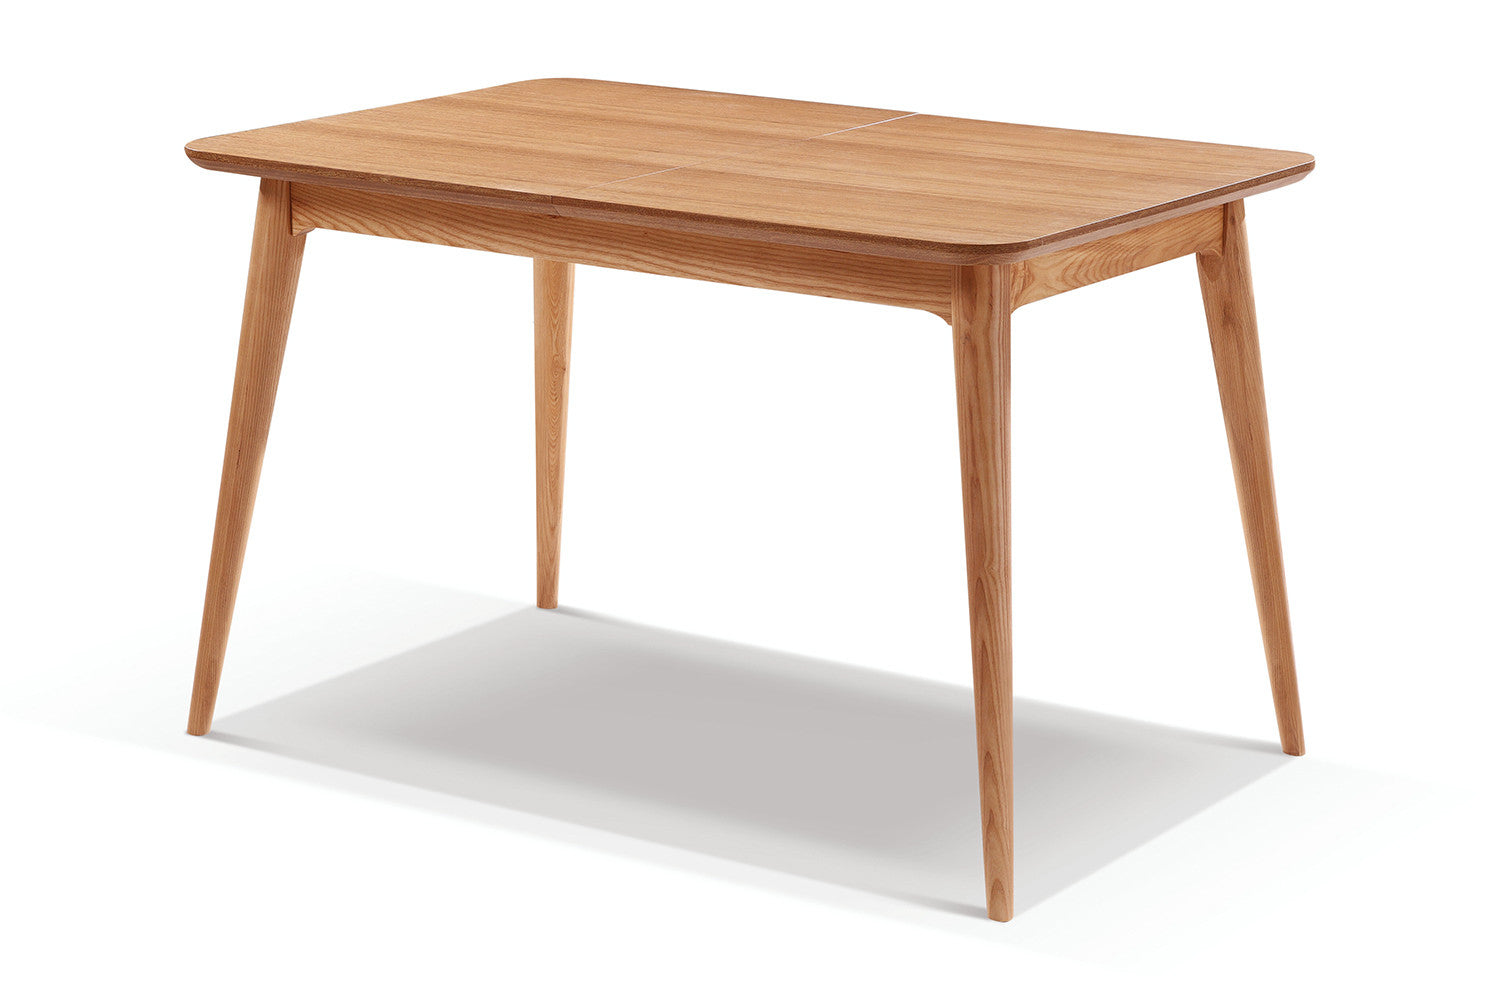 Table de salle manger extensible en bois adda dewarens for Table extensible cuisine